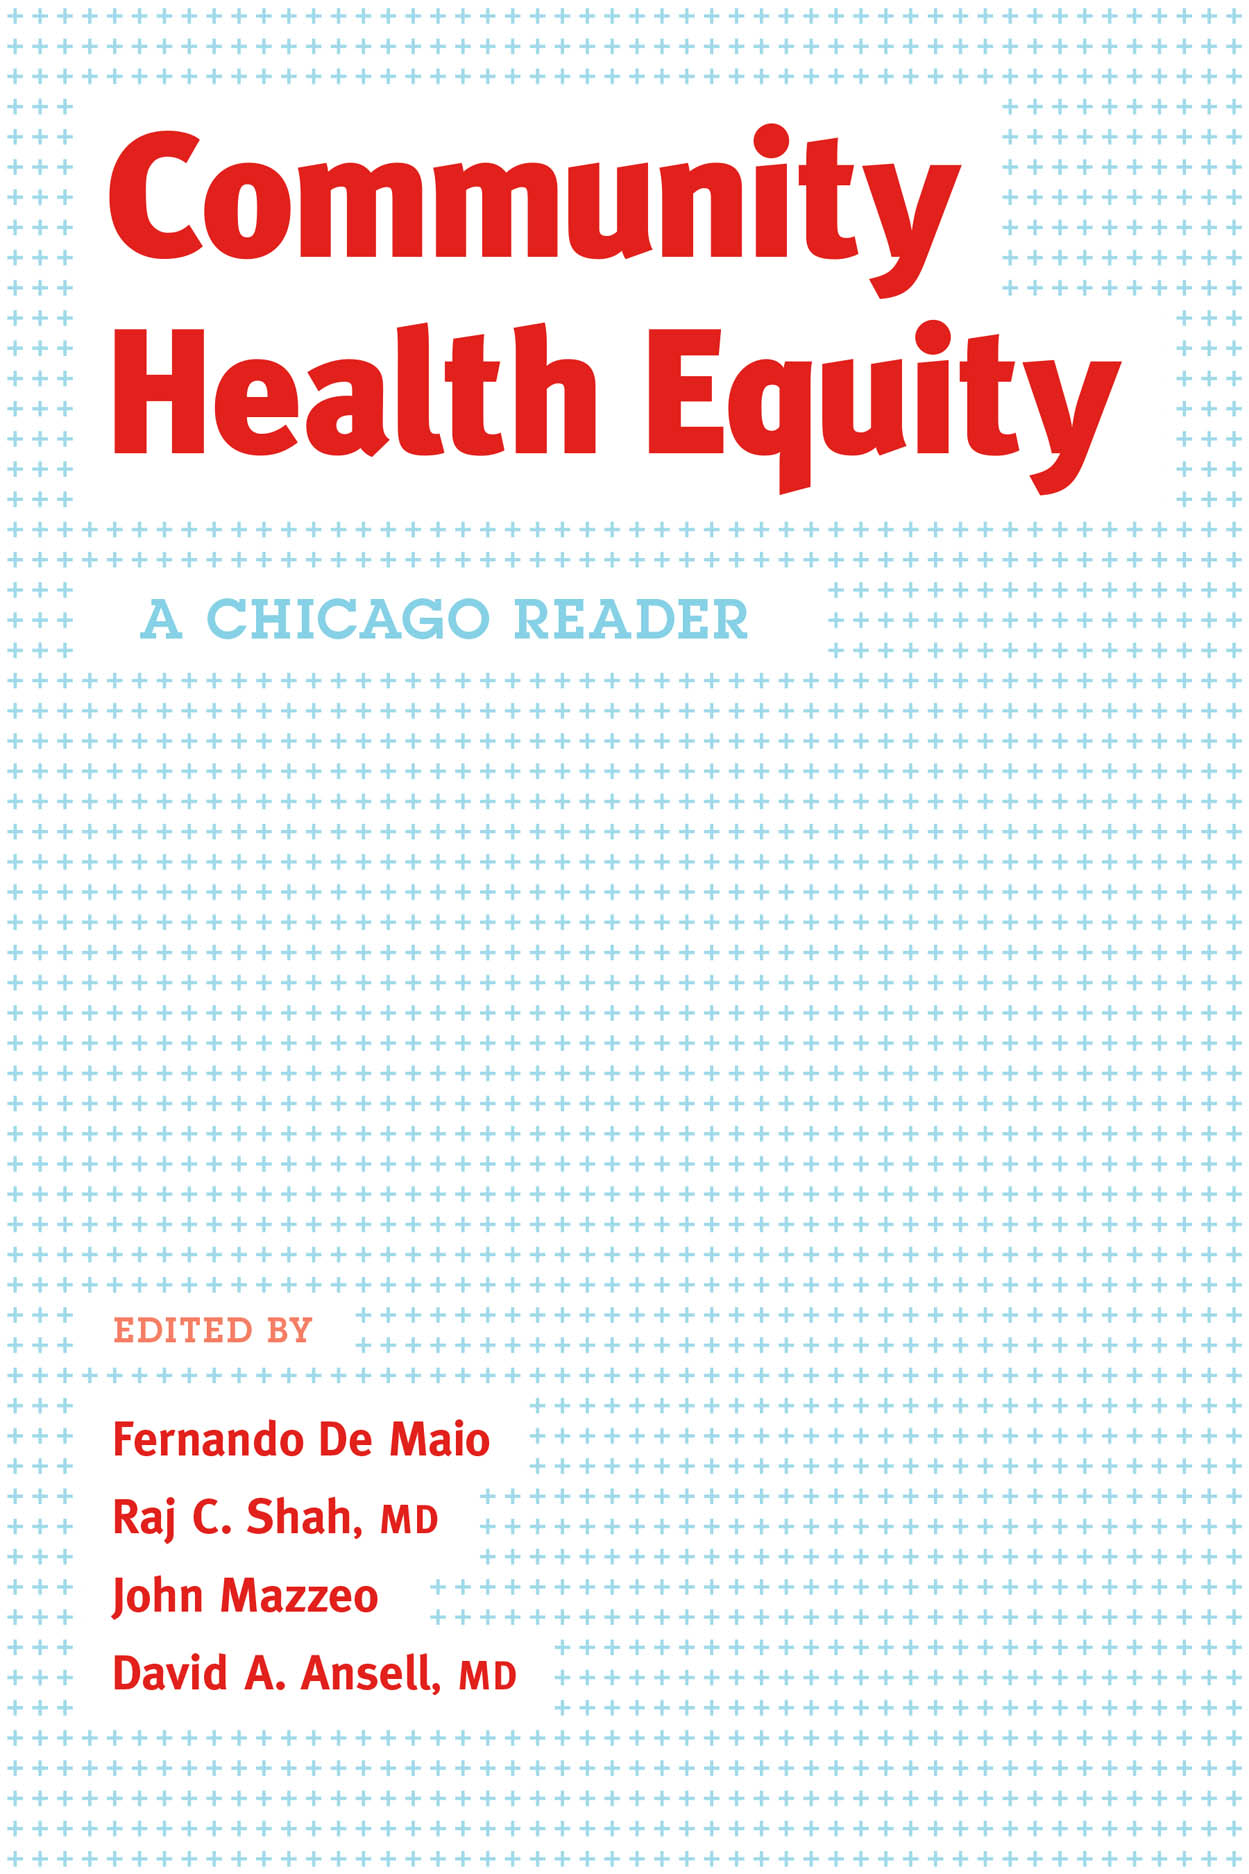 Community Health Equity